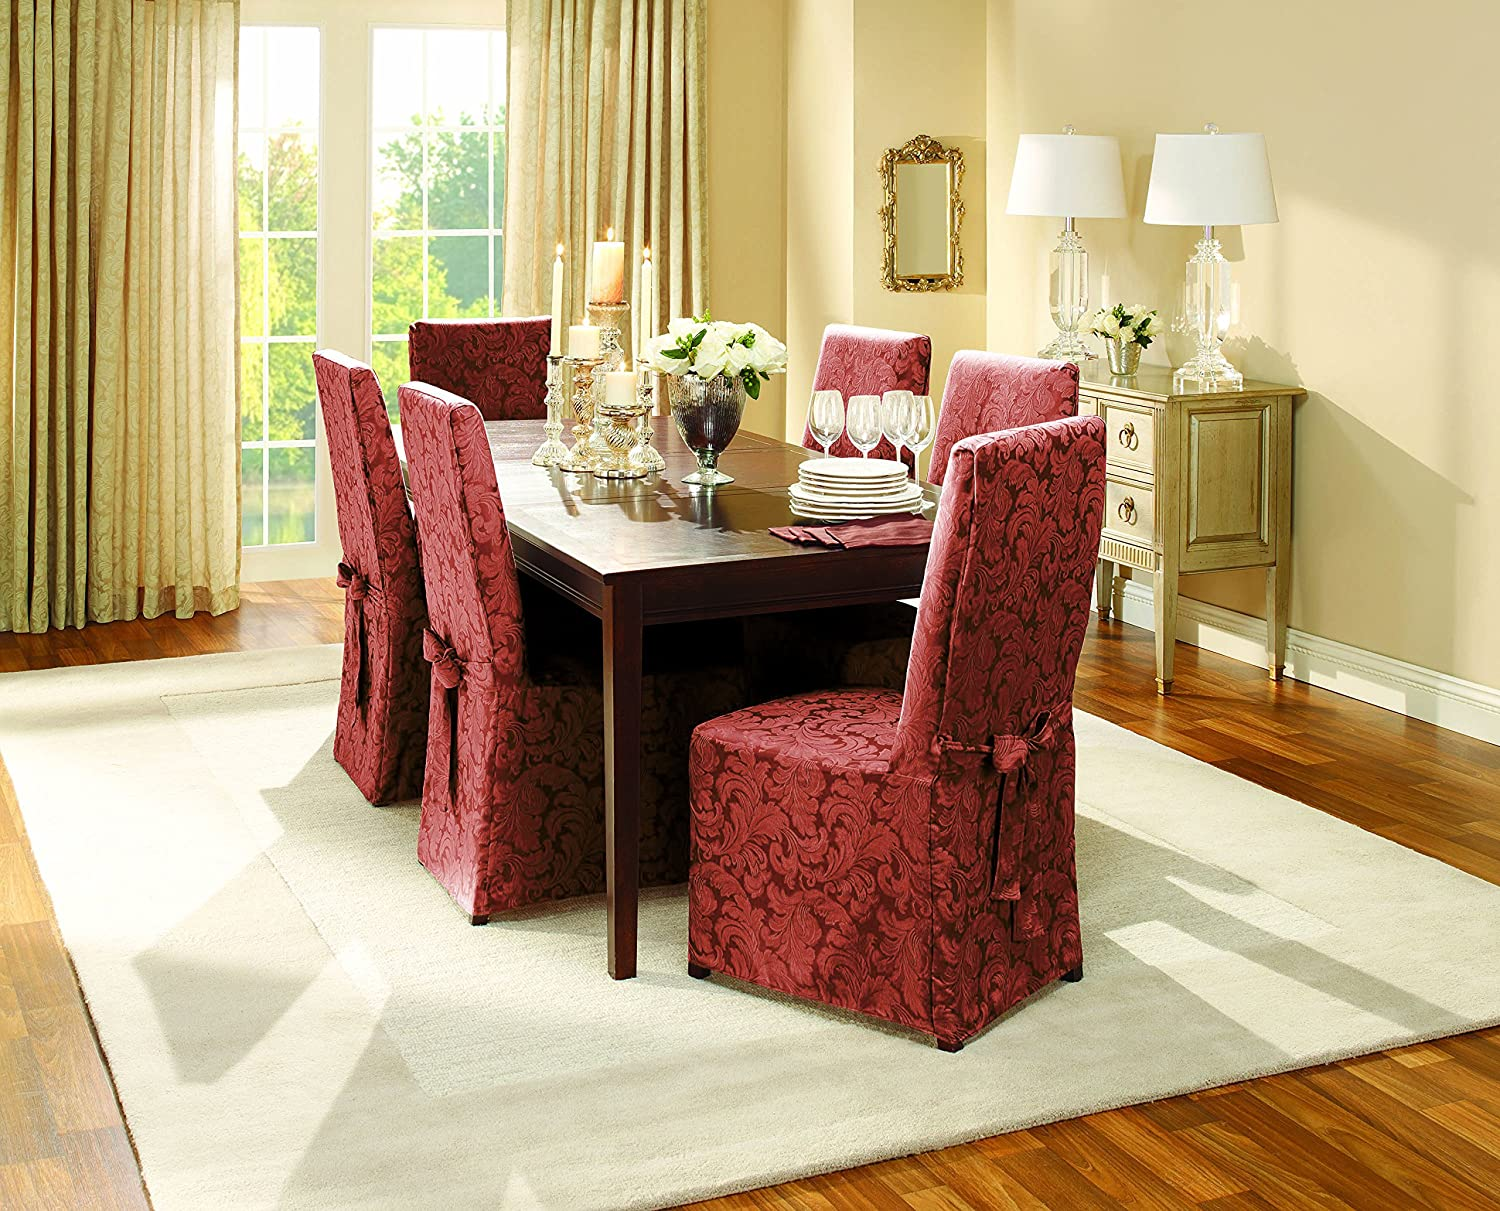 Burgundy dining room chair covers - Amazon Com Sure Fit Scroll Dining Room Chair Slipcover Burgundy Sf35464 Home Kitchen